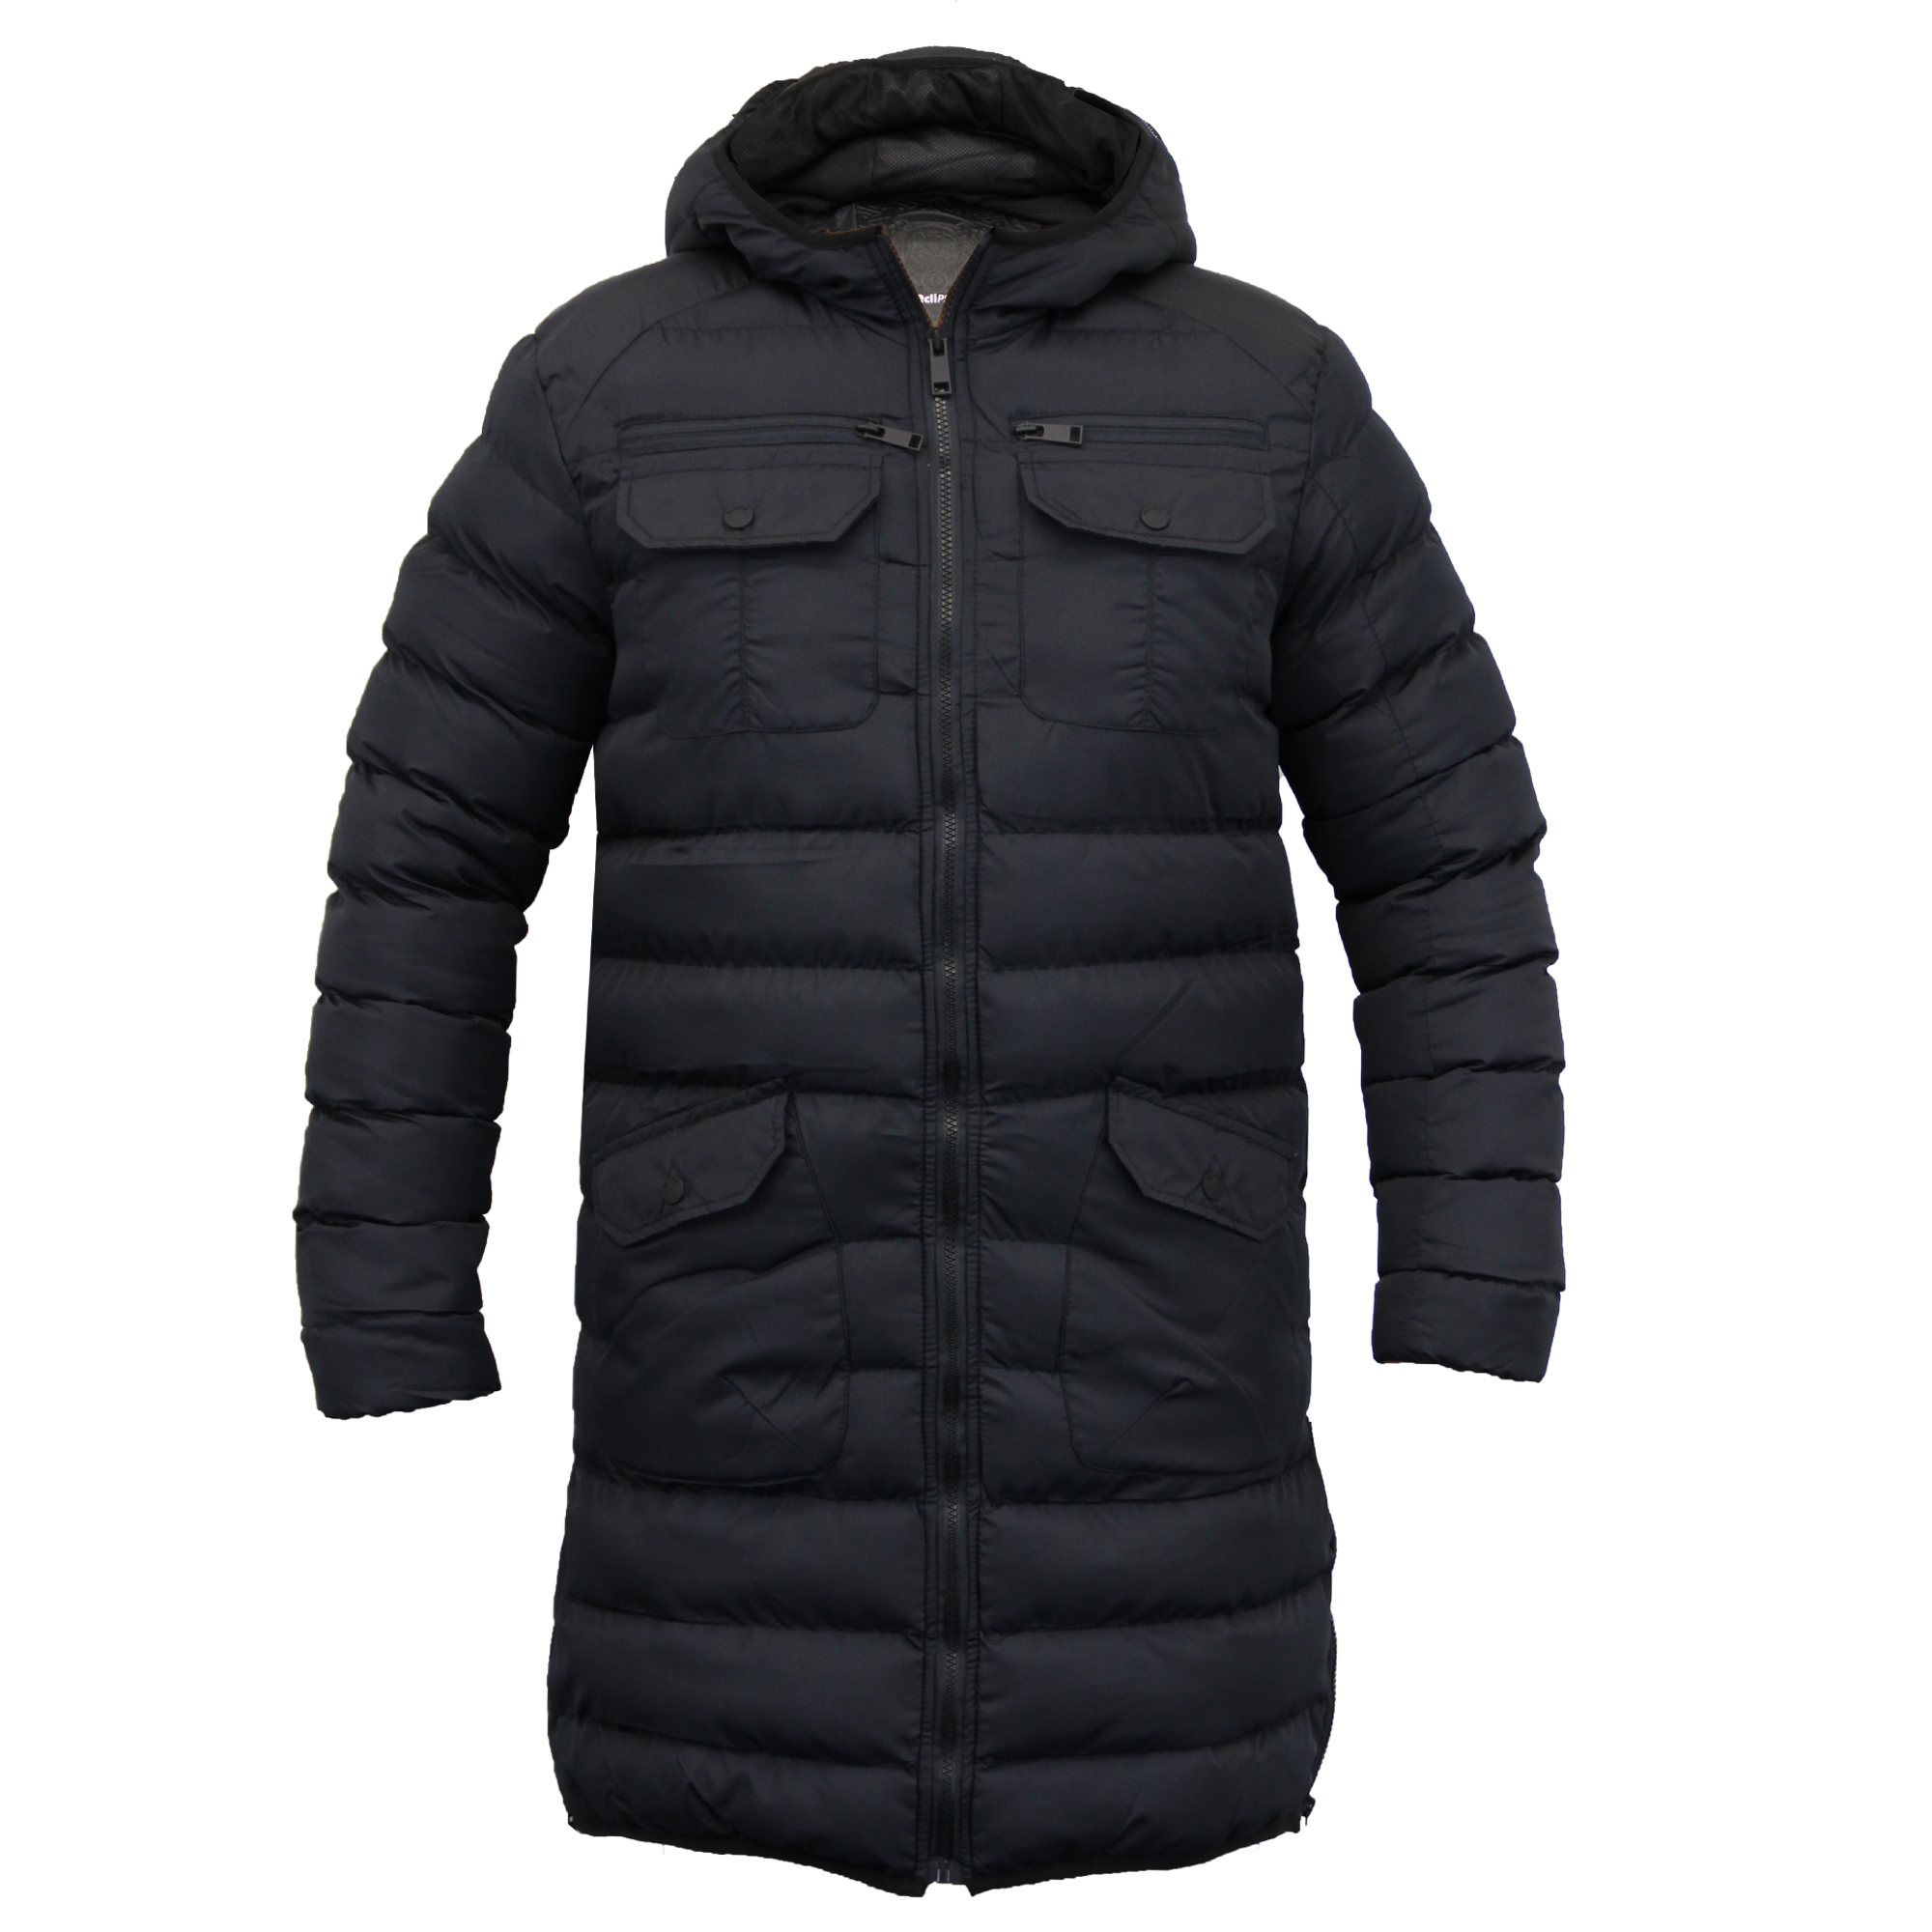 Men's Outerwear: Free Shipping on orders over $45 at coolvloadx4.ga - Your Online Men's Clothing Store! Cianni Cellini Men's Harvard Black Wool Blend Long Top Coat. 30 Reviews. SALE. Quick View. Sale $ Winter and Autumn Men' Fashion 2 Parts .